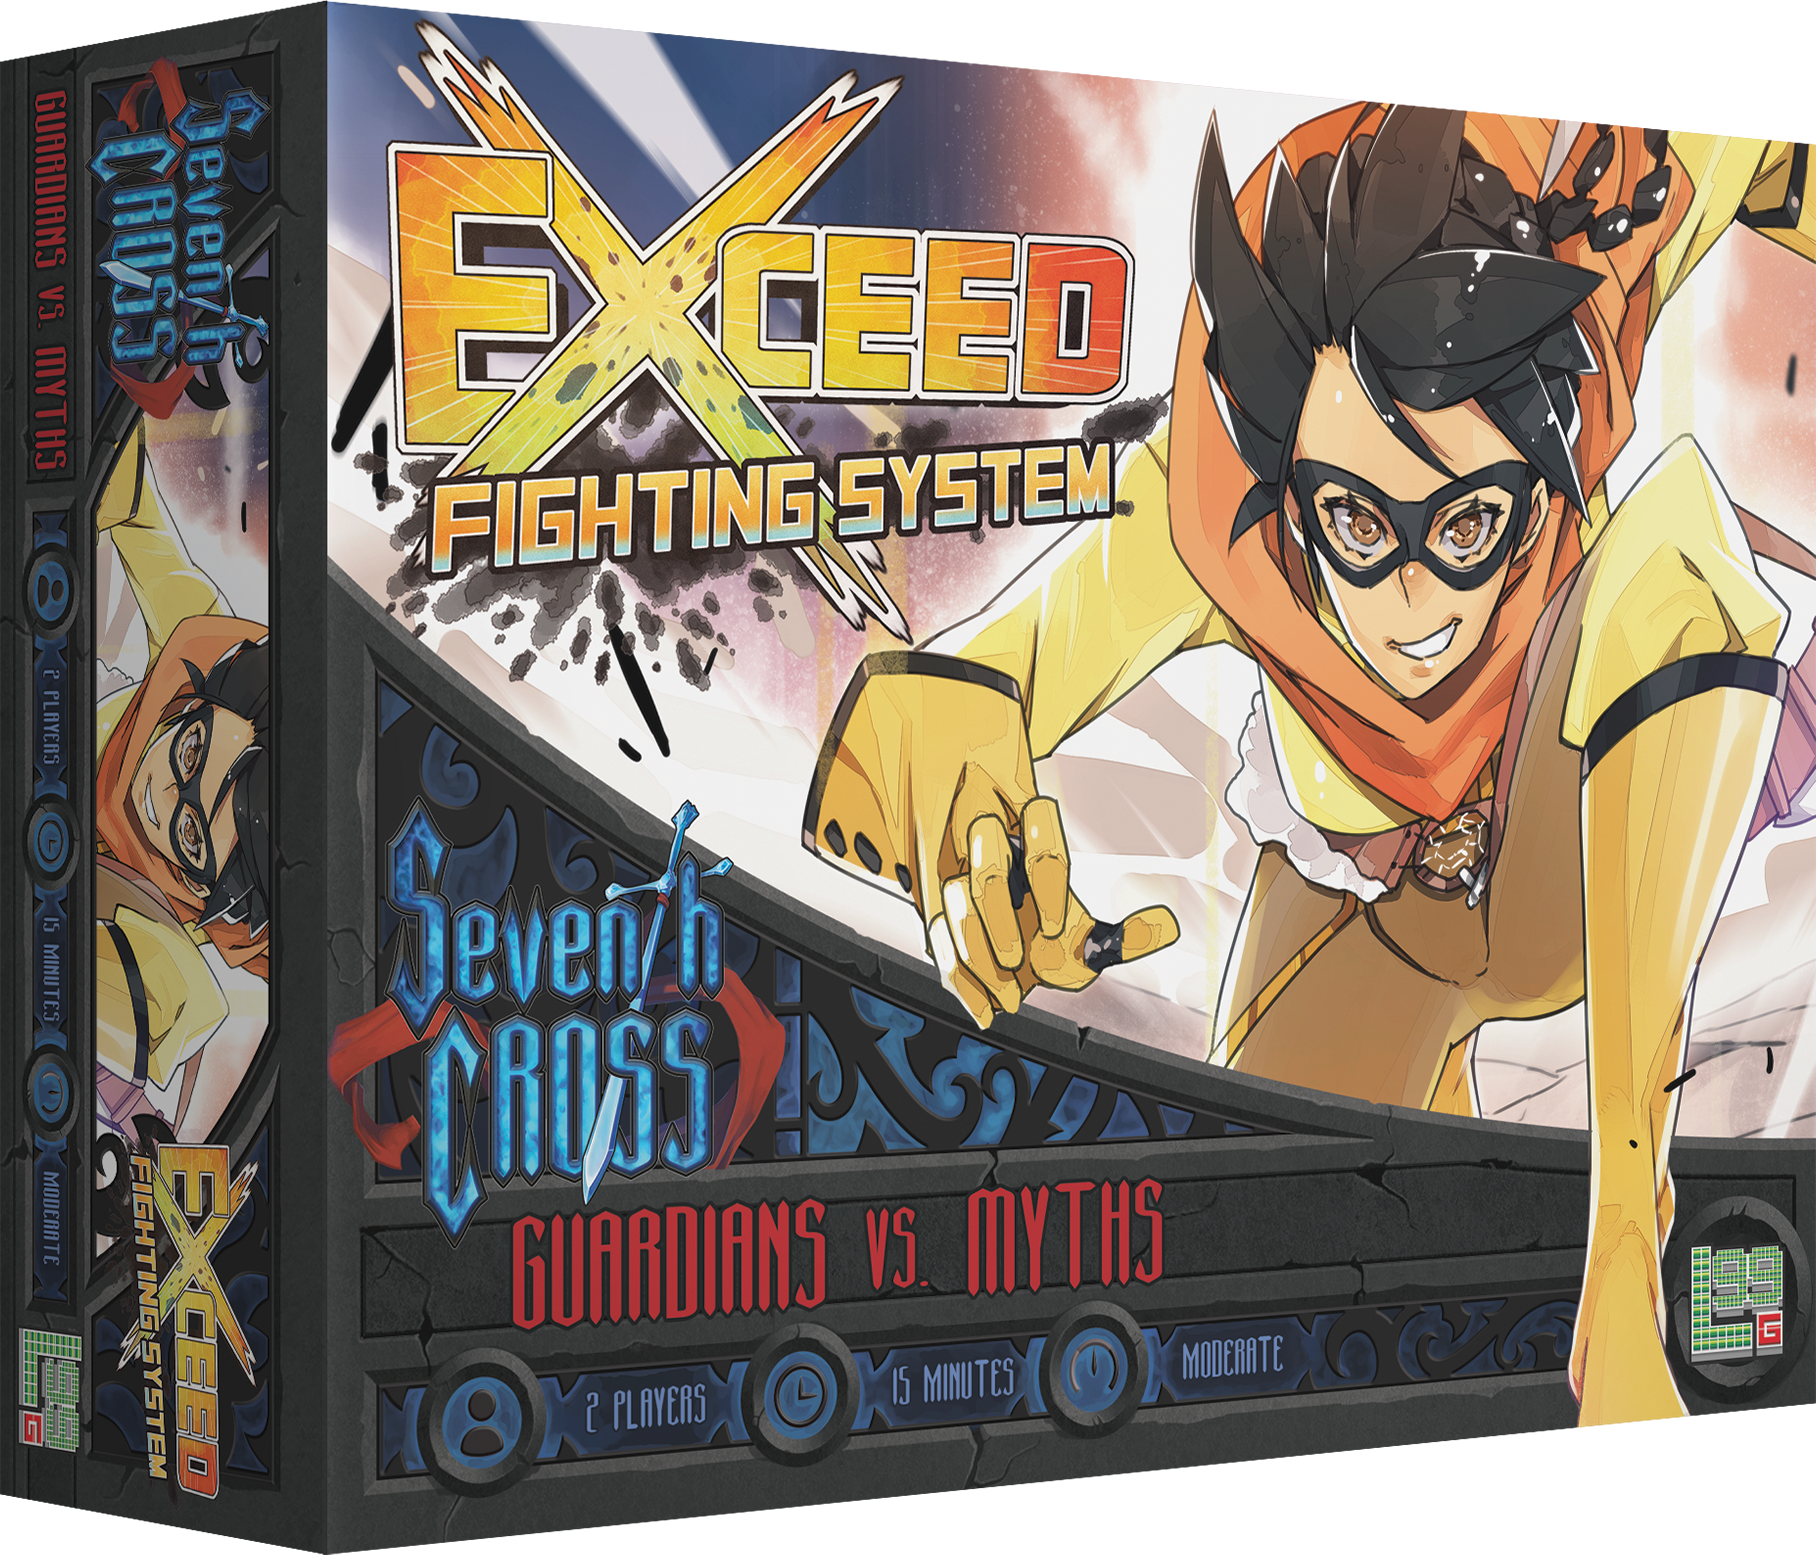 Exceed Fighting Sys: Seventh Cross - Guardians vs. Myths